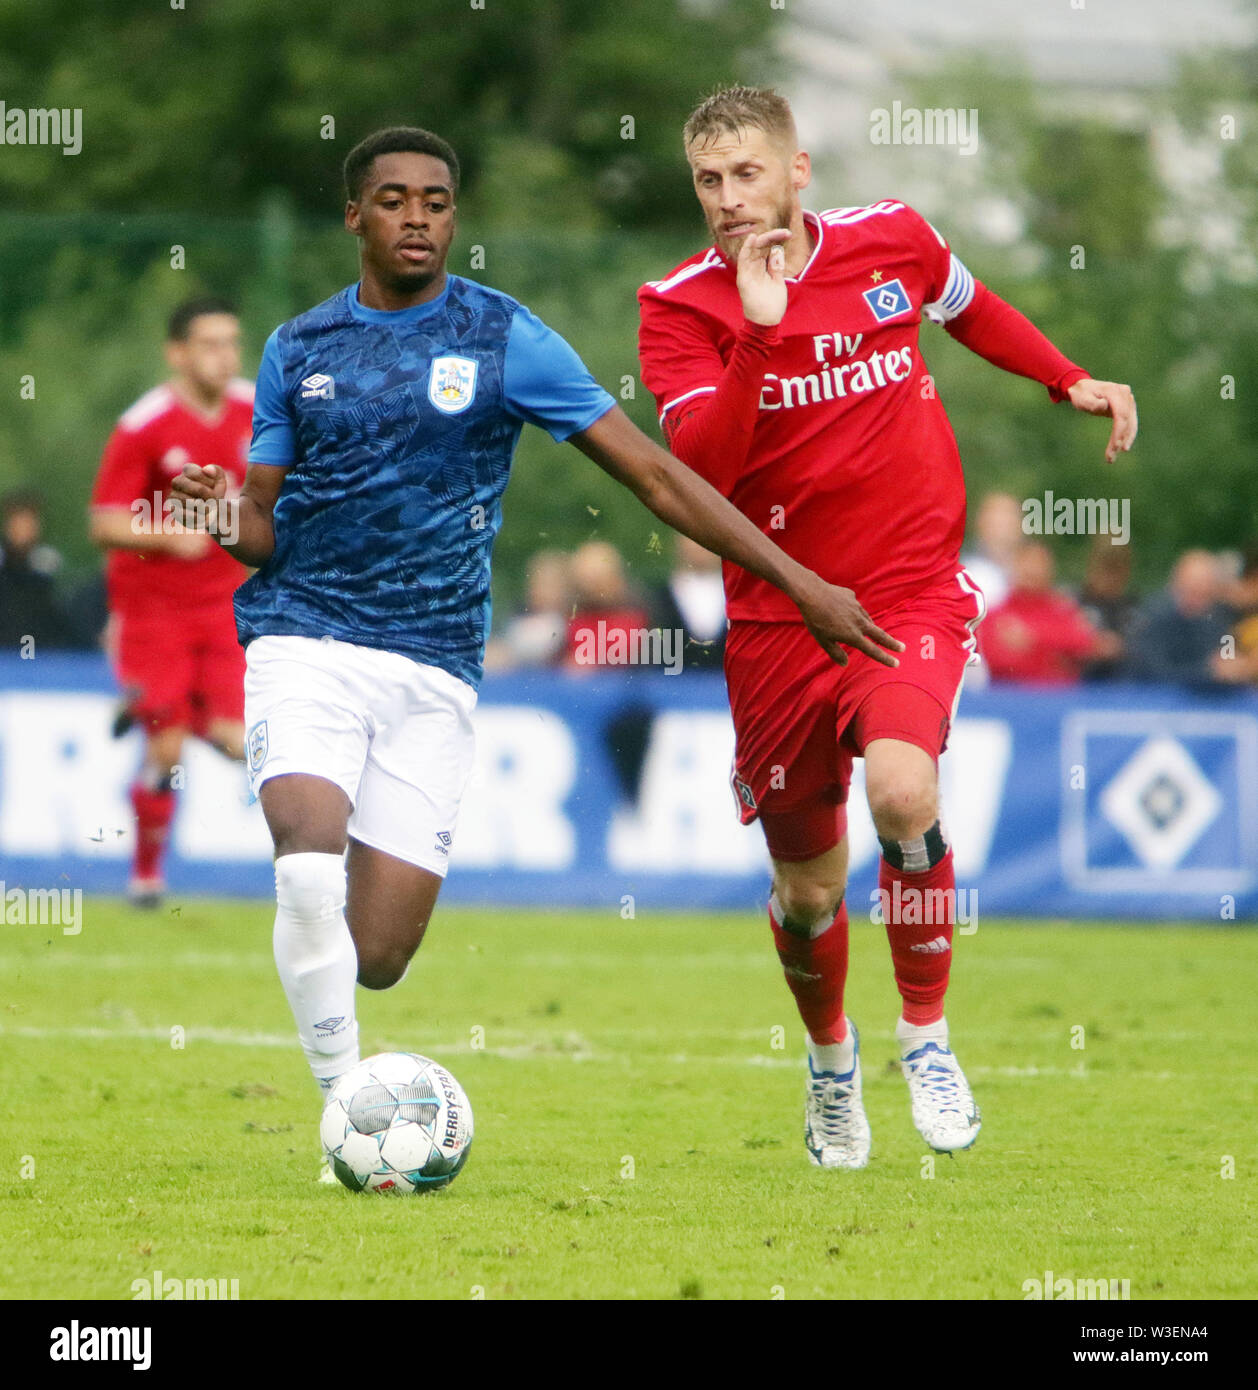 Kitzbuehel, Austria. 13th July, 2019. from left t Reec BROWN (Huddersfield), Aaron HUNT (Hamburg), .pre season friendly 2019/20, .Huddersfield Town FC vs Hamburger SV.Stadion Kitzbuehel/Austria, July 13, 2019, .Huddersfield Town, the relegated team of the Premiere League wins in a pre season friendly against the former German champion Hamburger SV. Credit: Wolfgang Fehrmann/ZUMA Wire/Alamy Live News - Stock Image